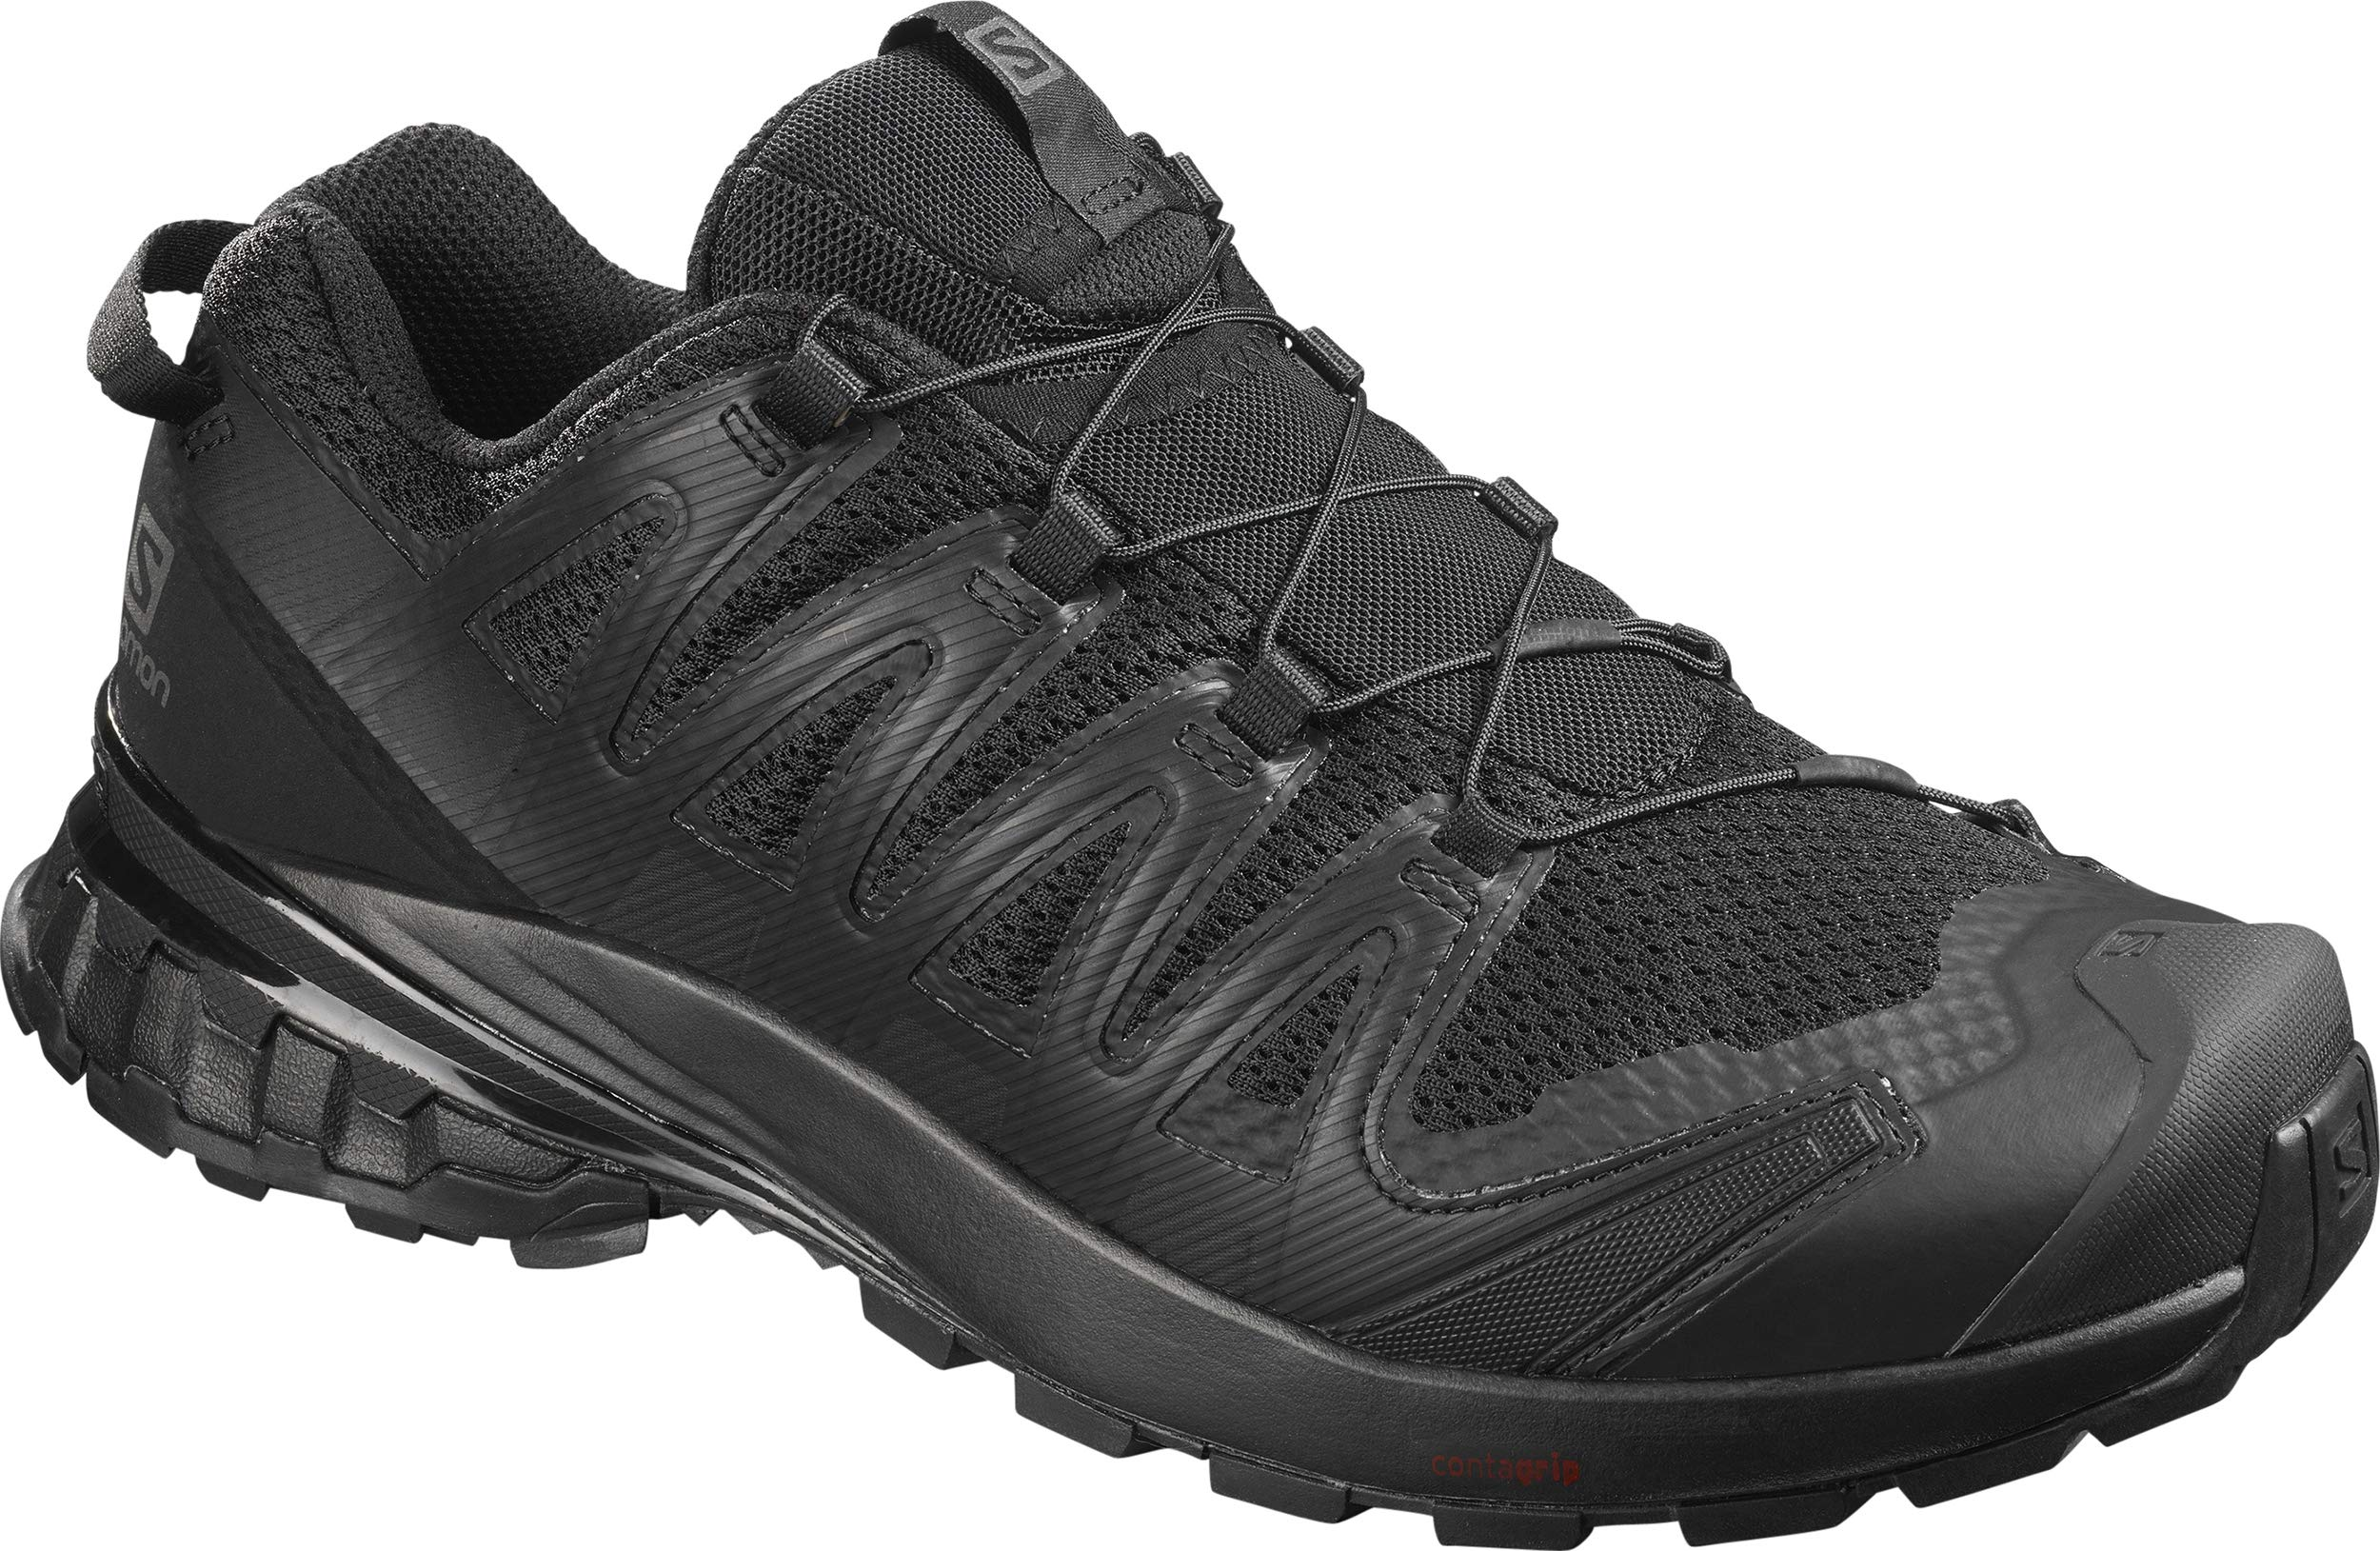 Salomon XA Pro 3D V8 Men's Trail Running / Hiking Shoe